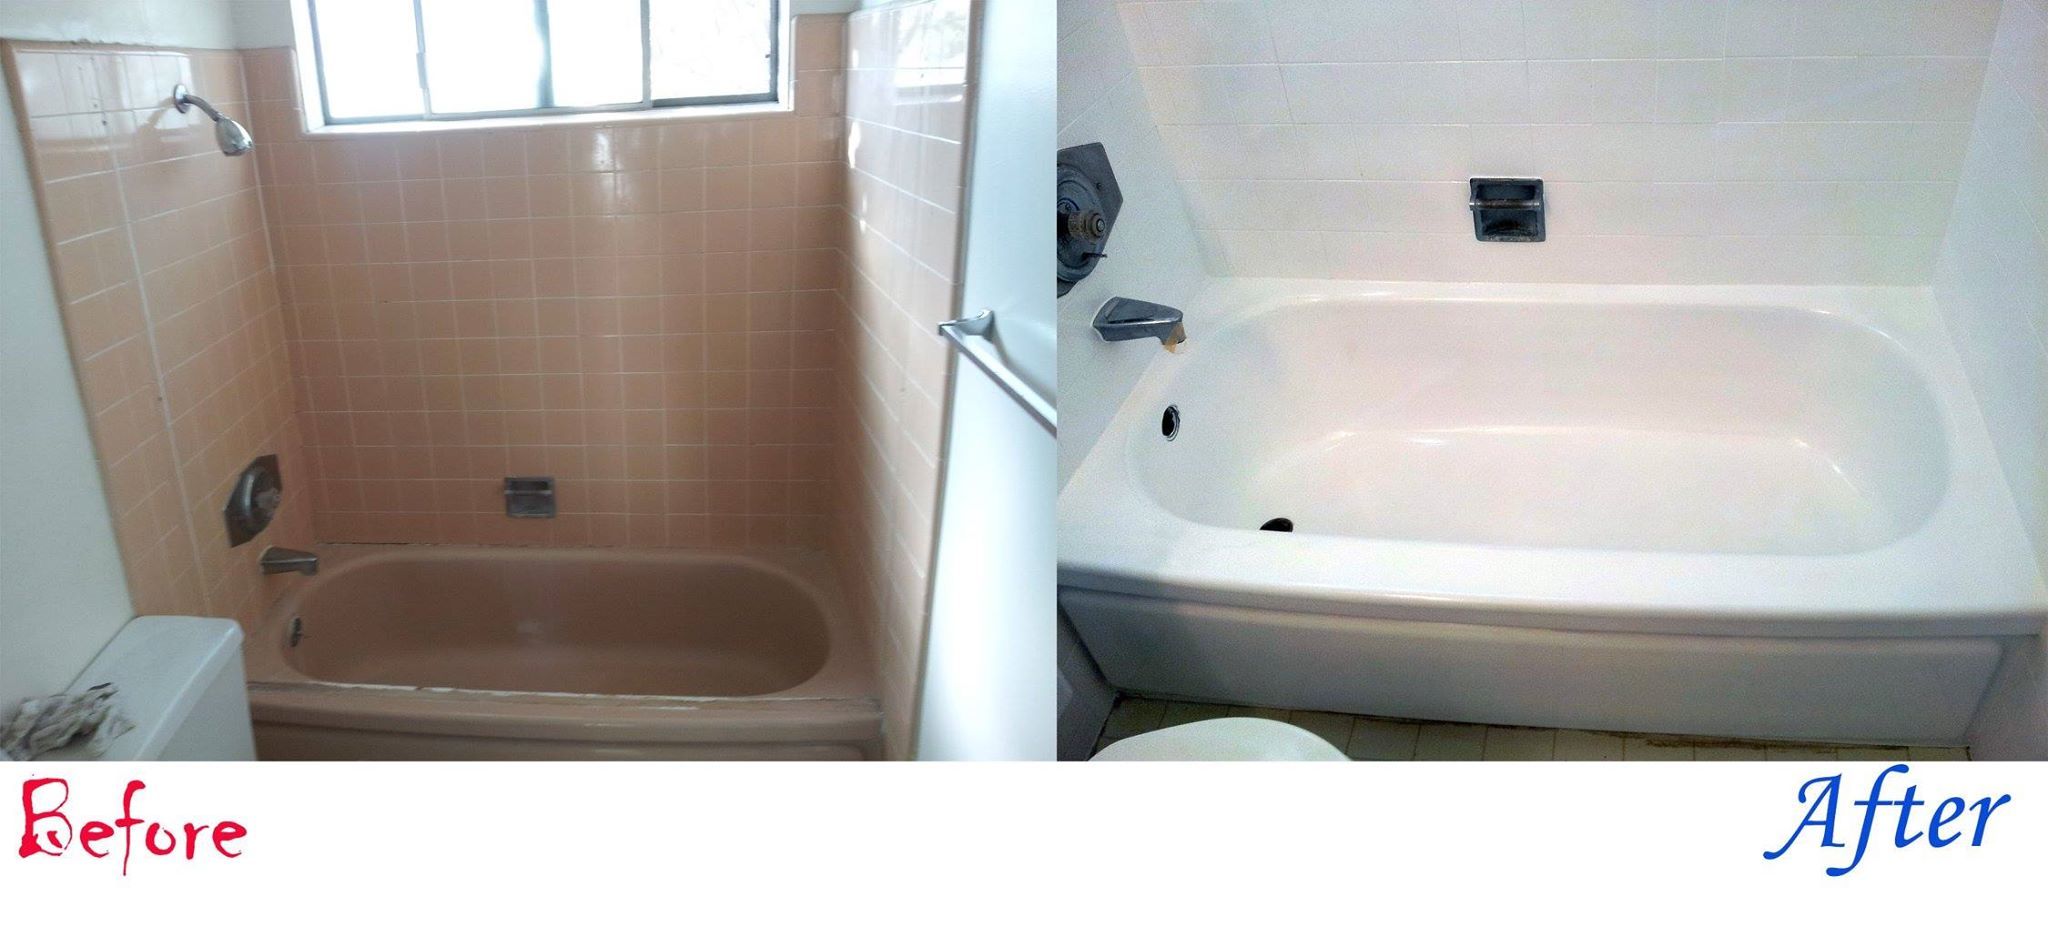 Excellent Painting Bathtubs Small Paint For Tub Clean Bathroom Refinishers Bathroom Refinishing Service Youthful How Much Does It Cost To Reglaze A Bathtub FreshShower Refinishing Cost REGLAZING Bathtub Refinishing | Tubs \u0026 Tiles